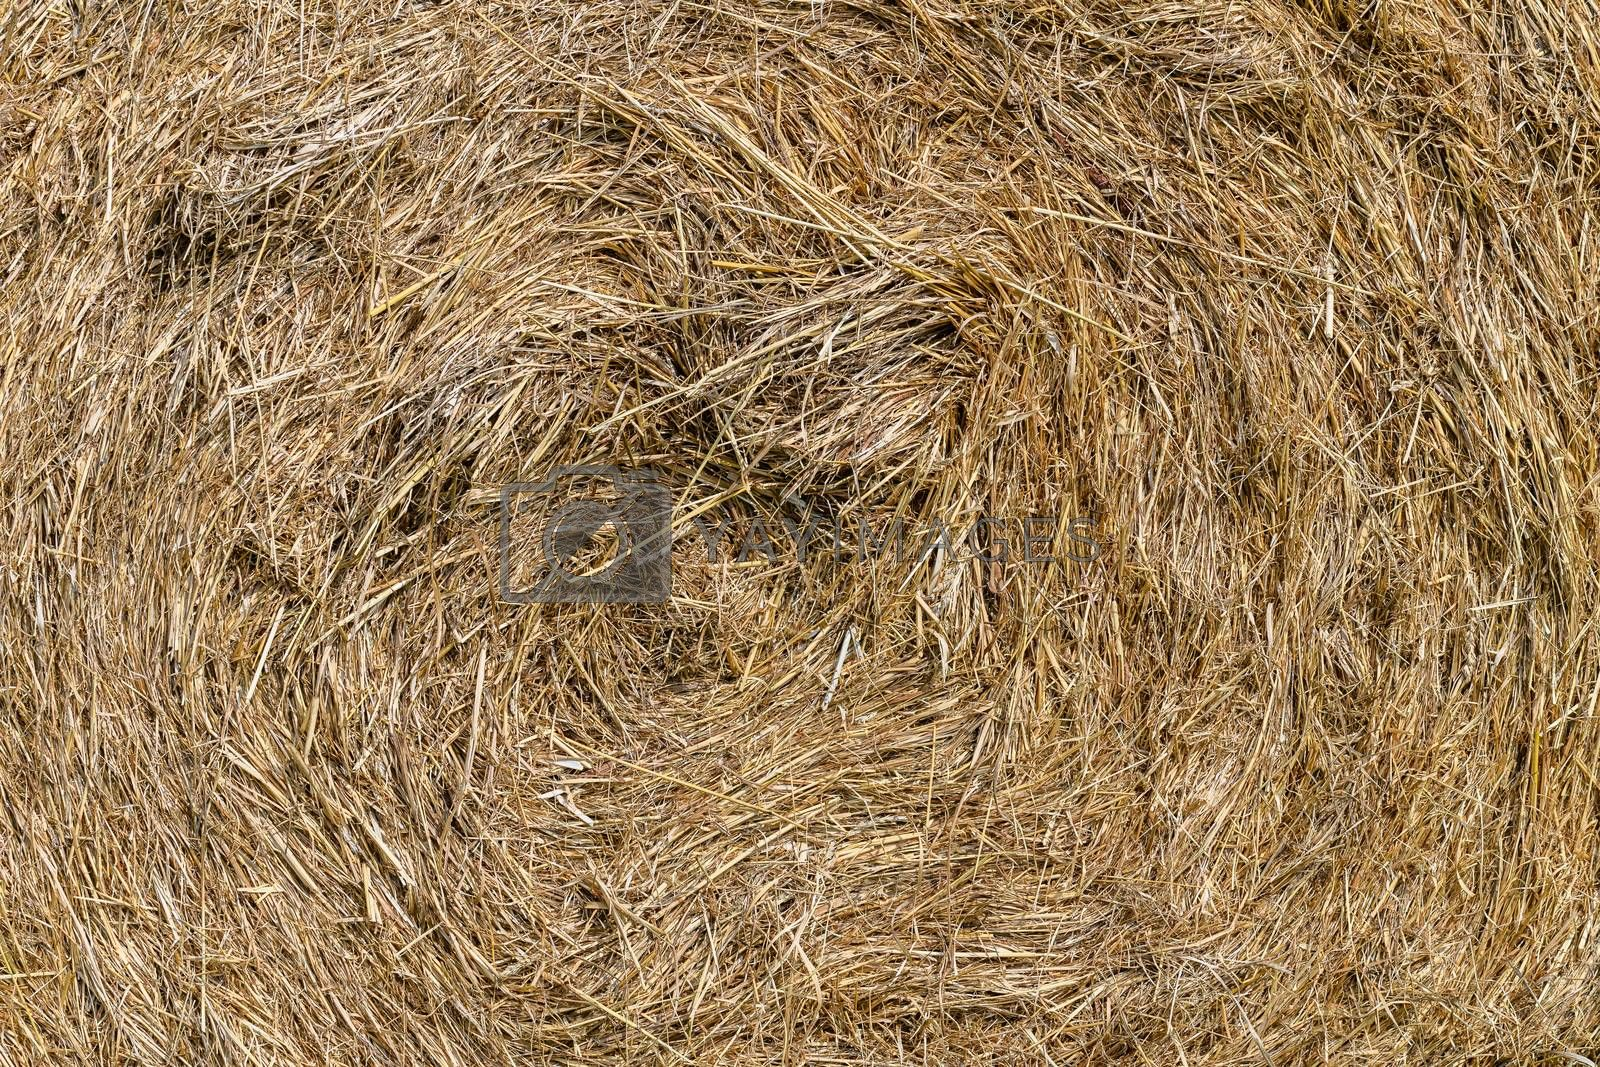 Close up of a hay bale